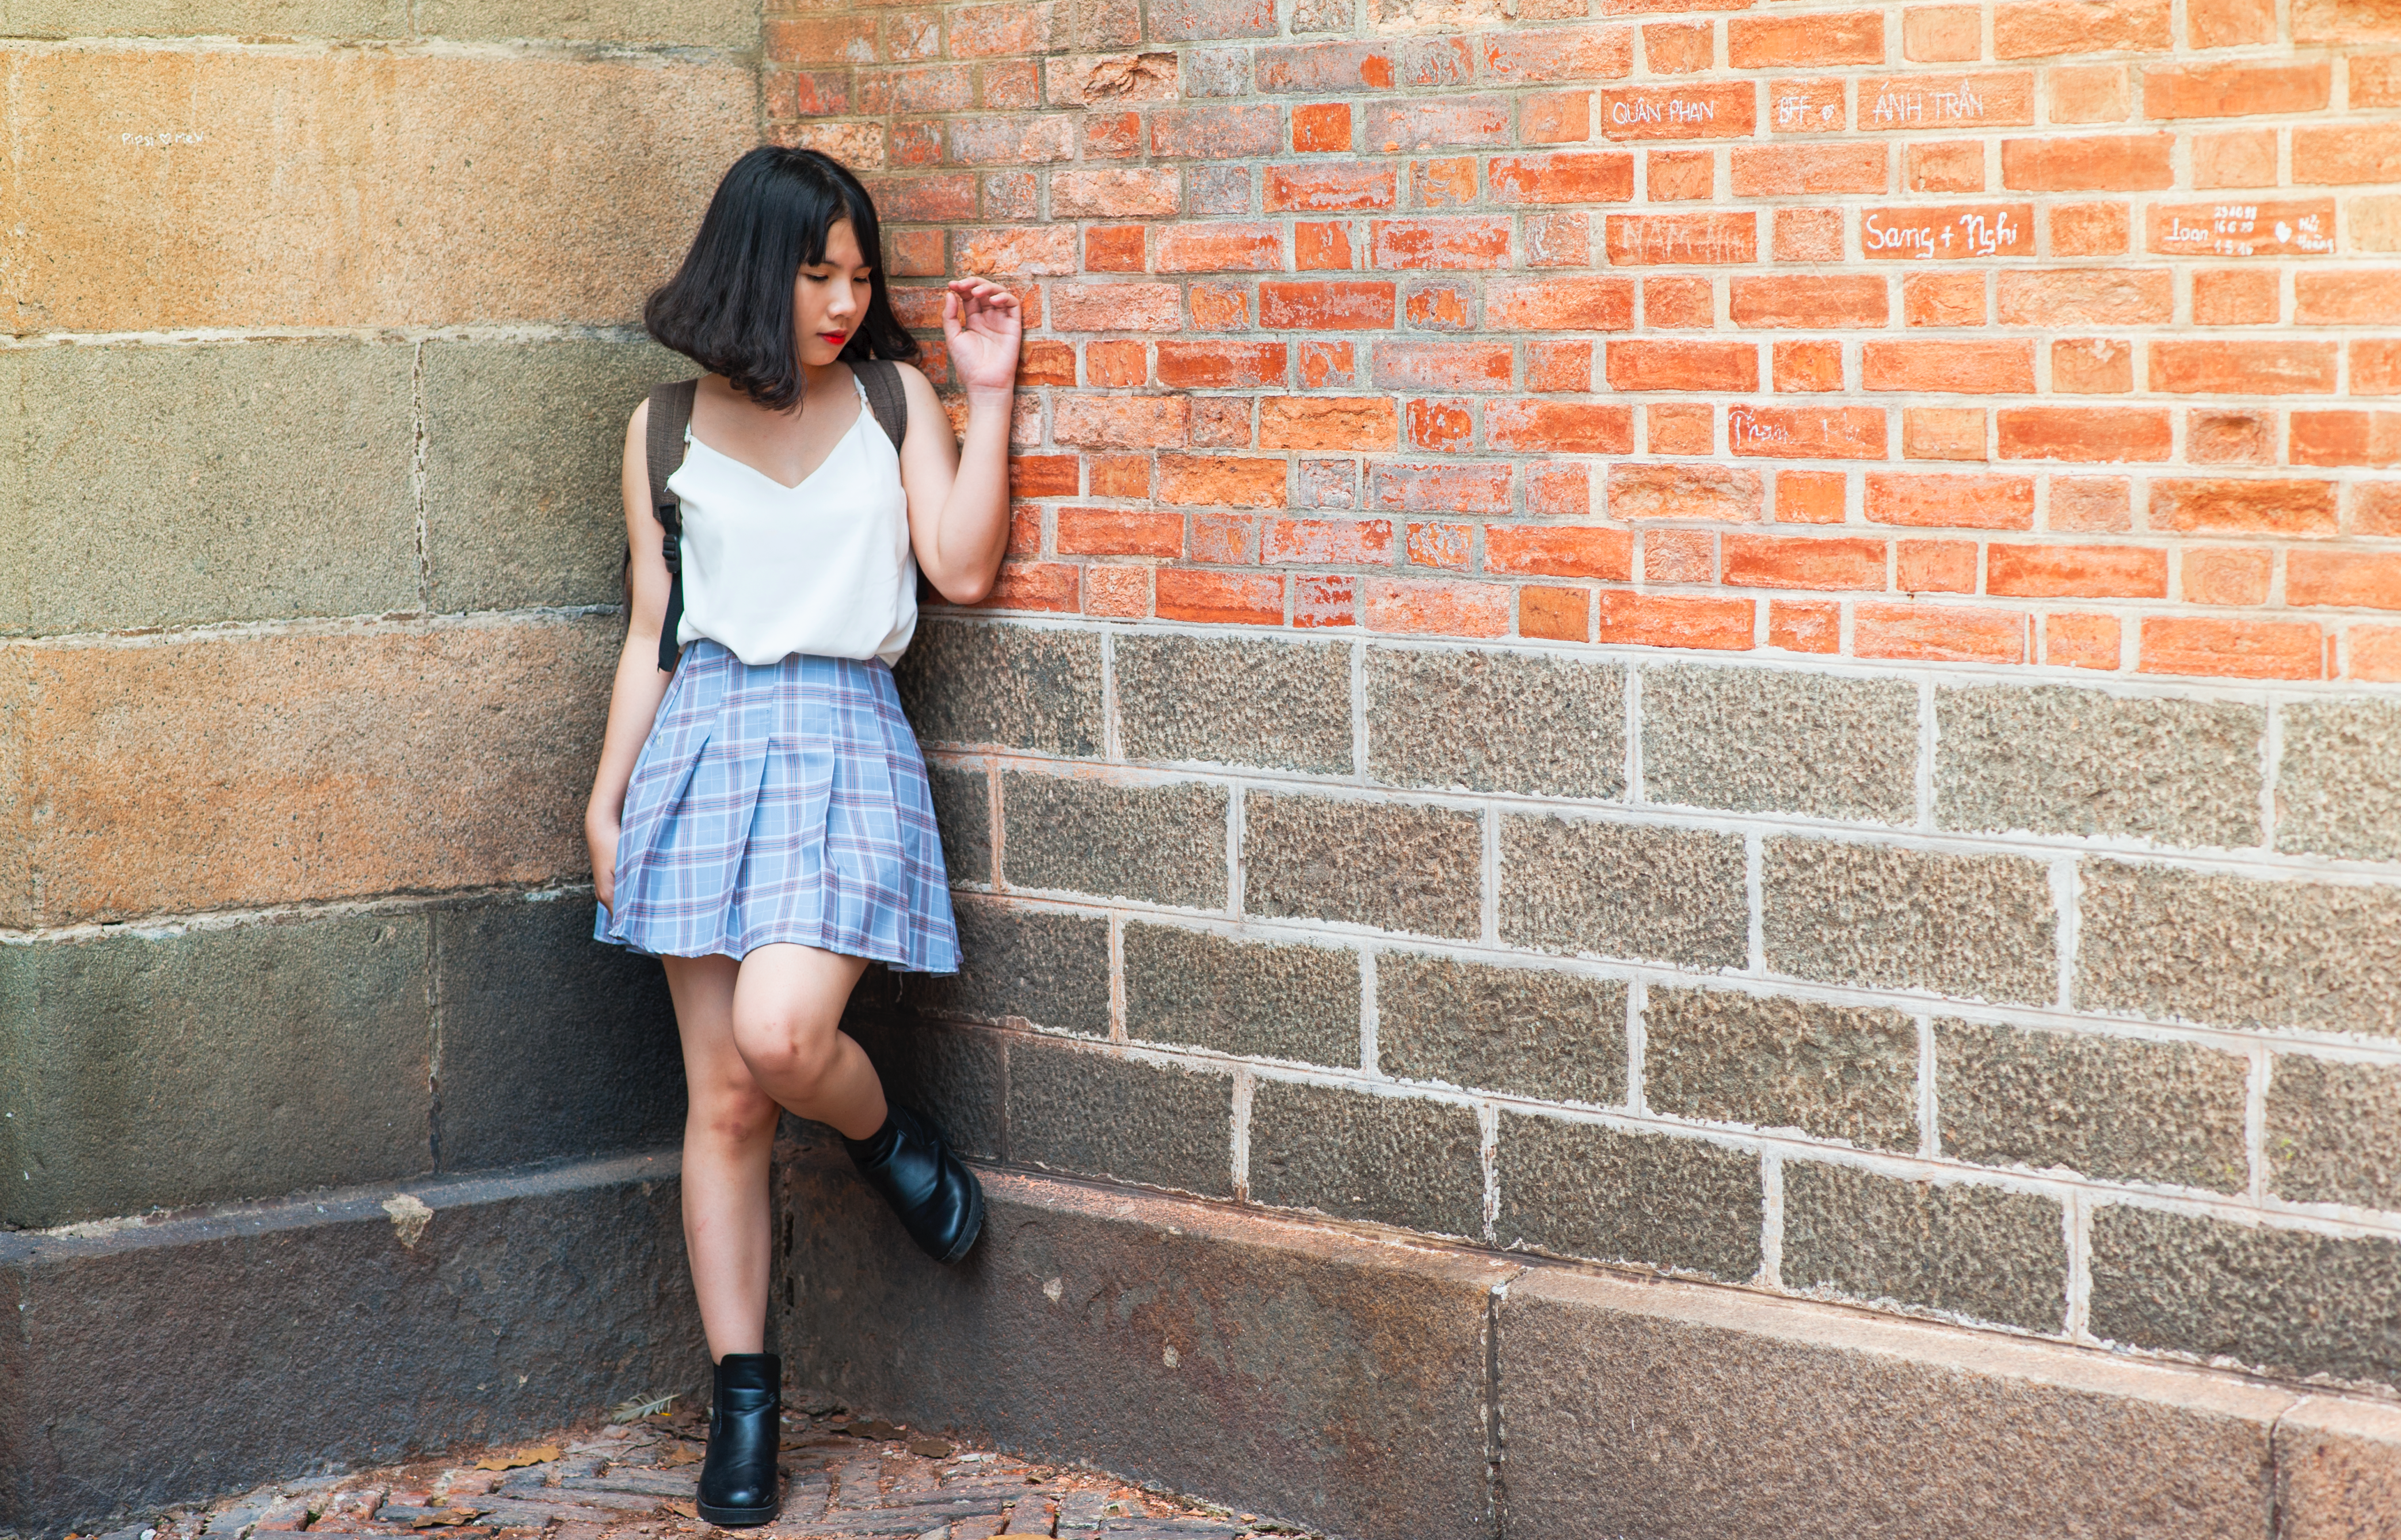 Woman beside brick and cinder wall photo